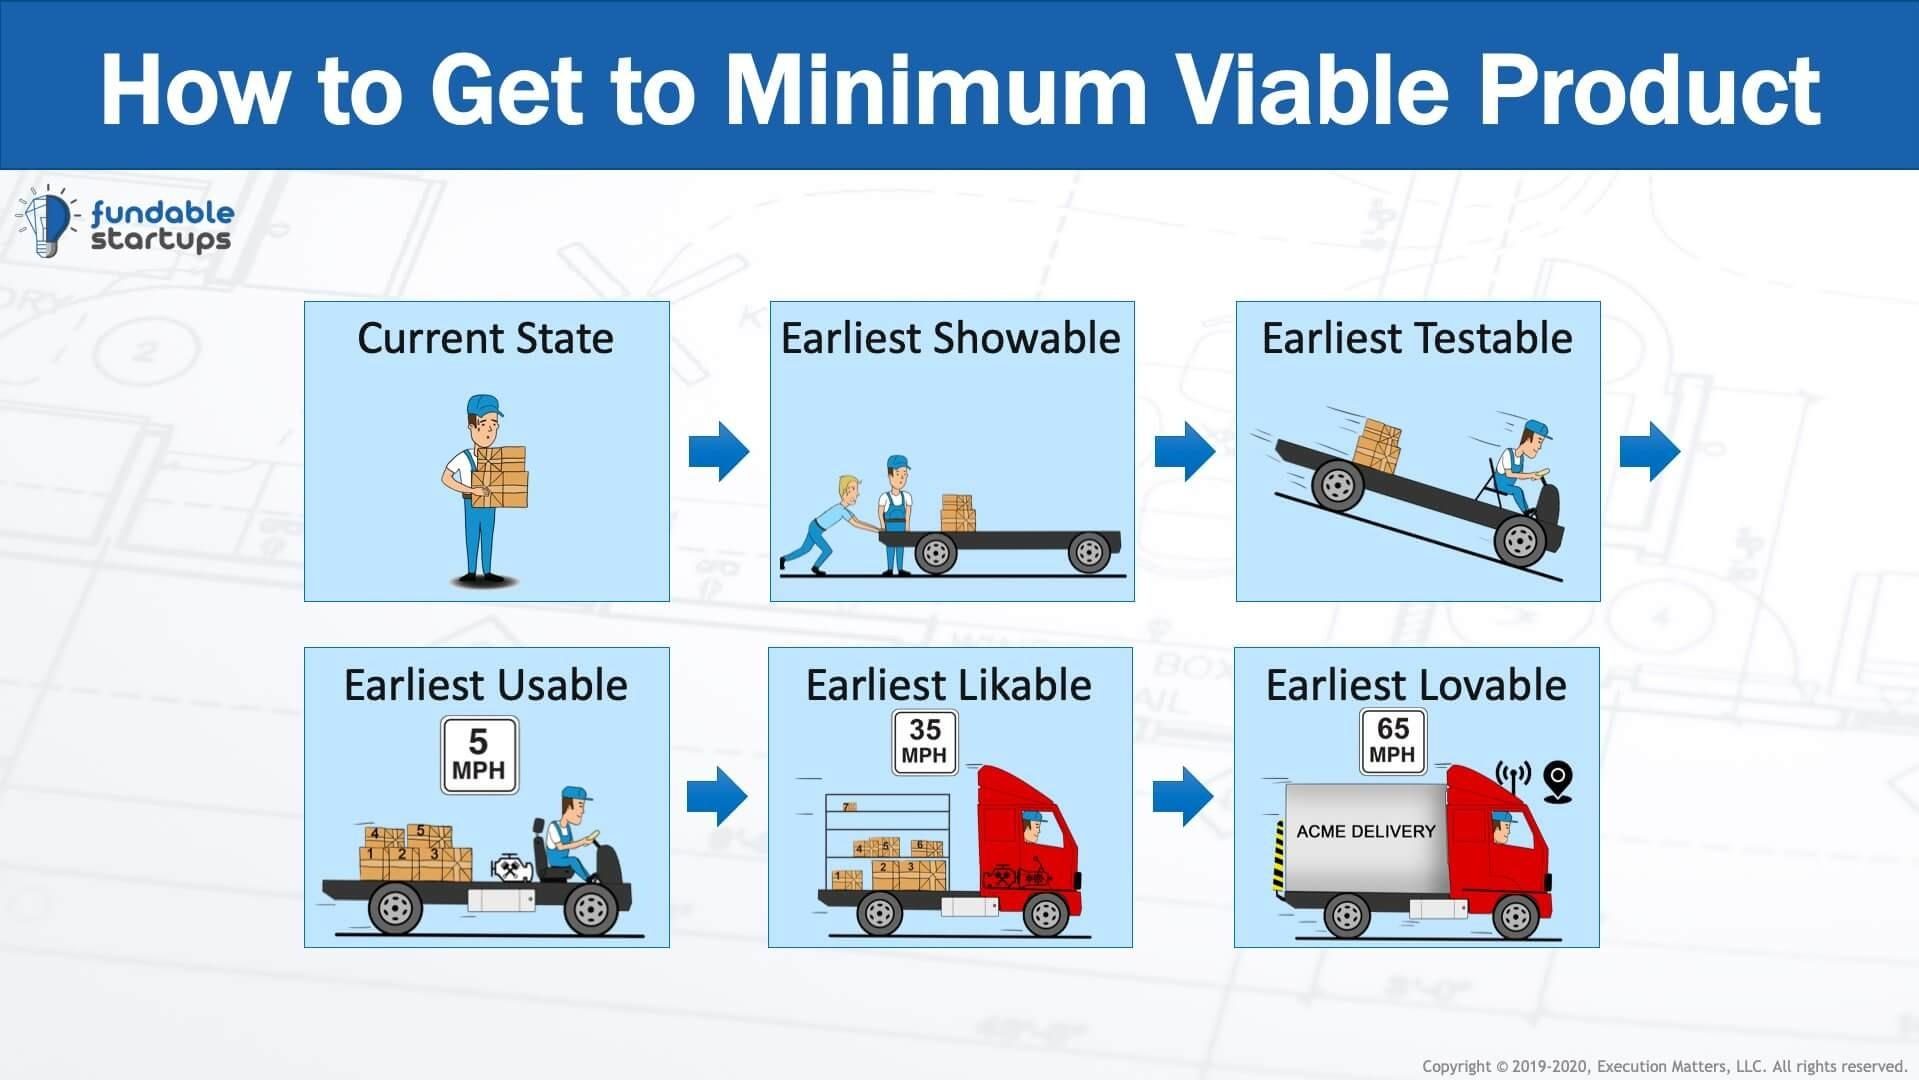 How to Get to Minimum Viable Product (MVP)